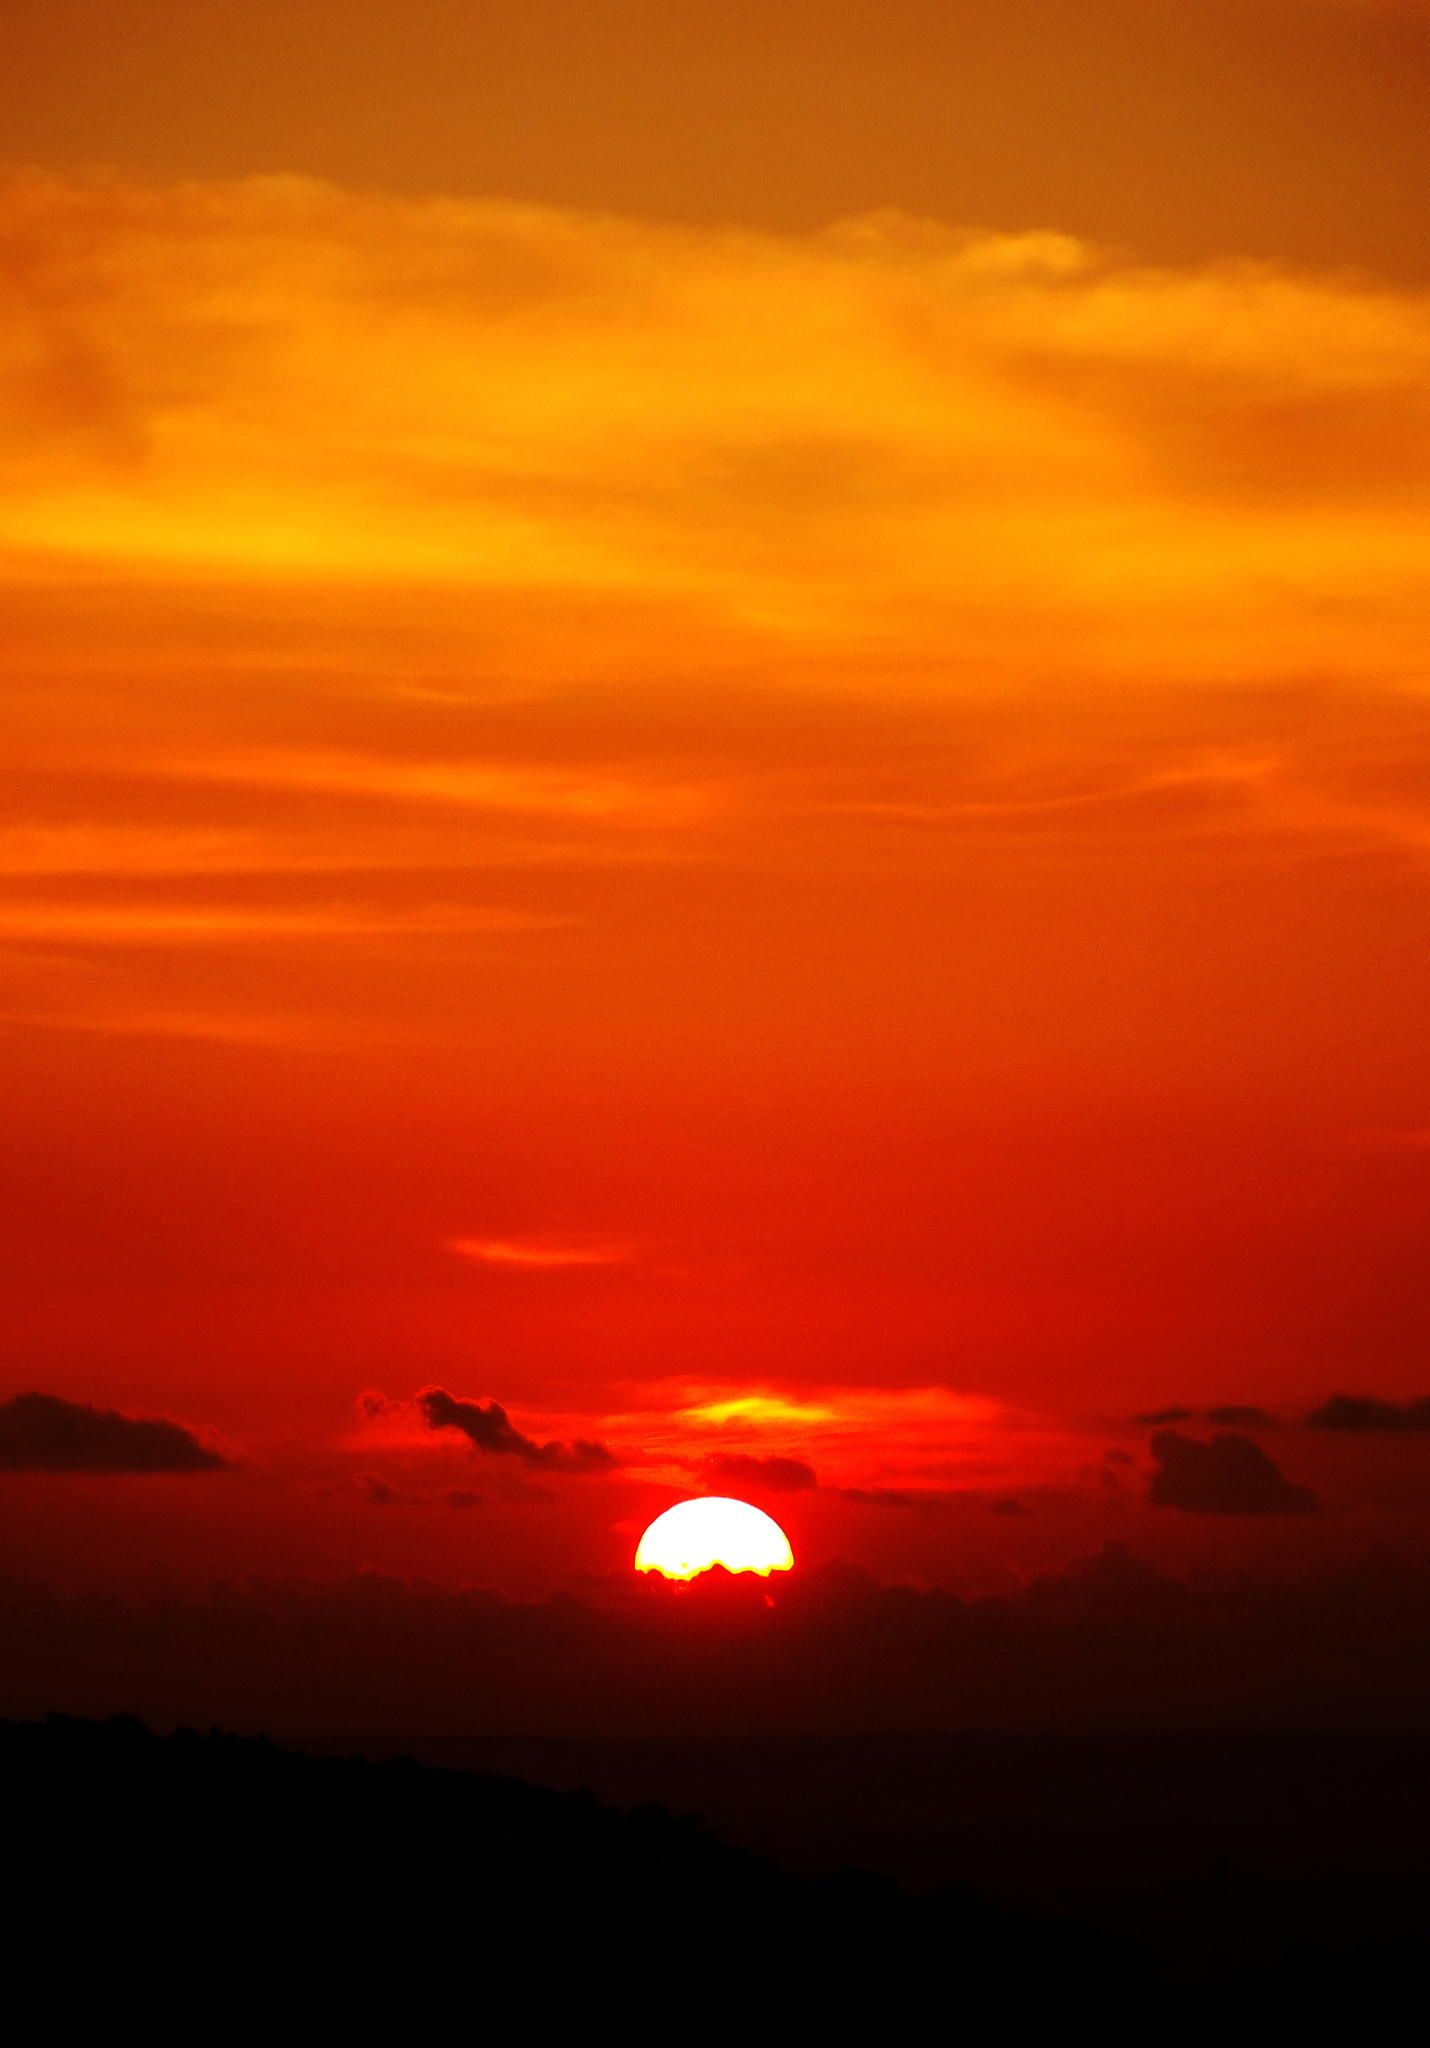 dawn - another sunset on one of the most romantic place in Jogja